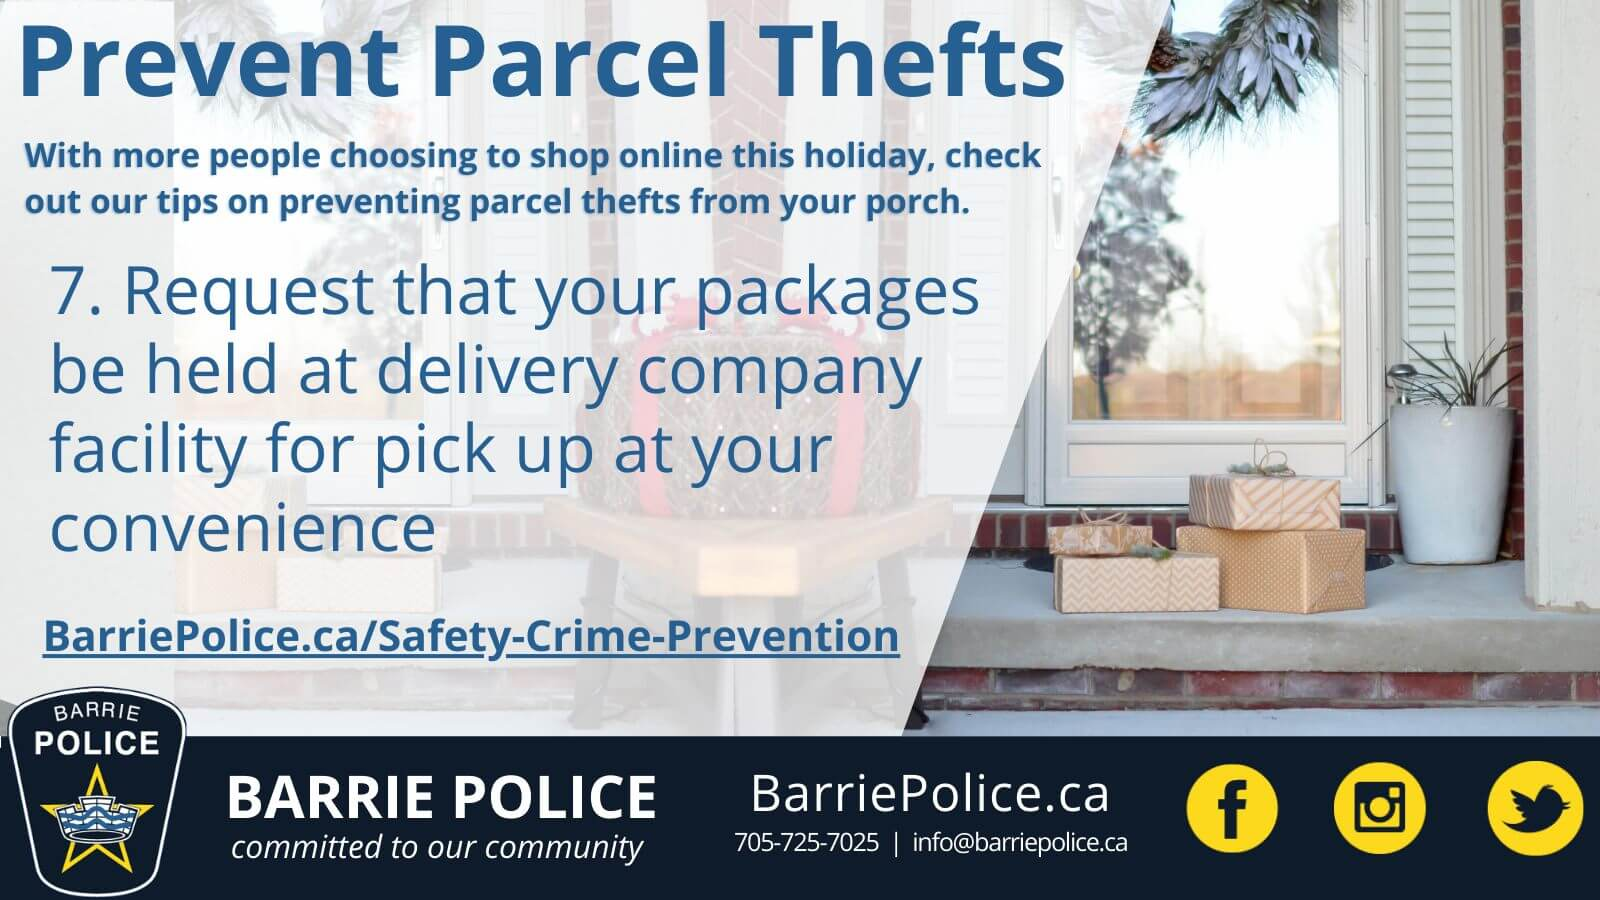 Prevent Parcel Thefts Tip 7: Request packages be held at delivery company location for pick up